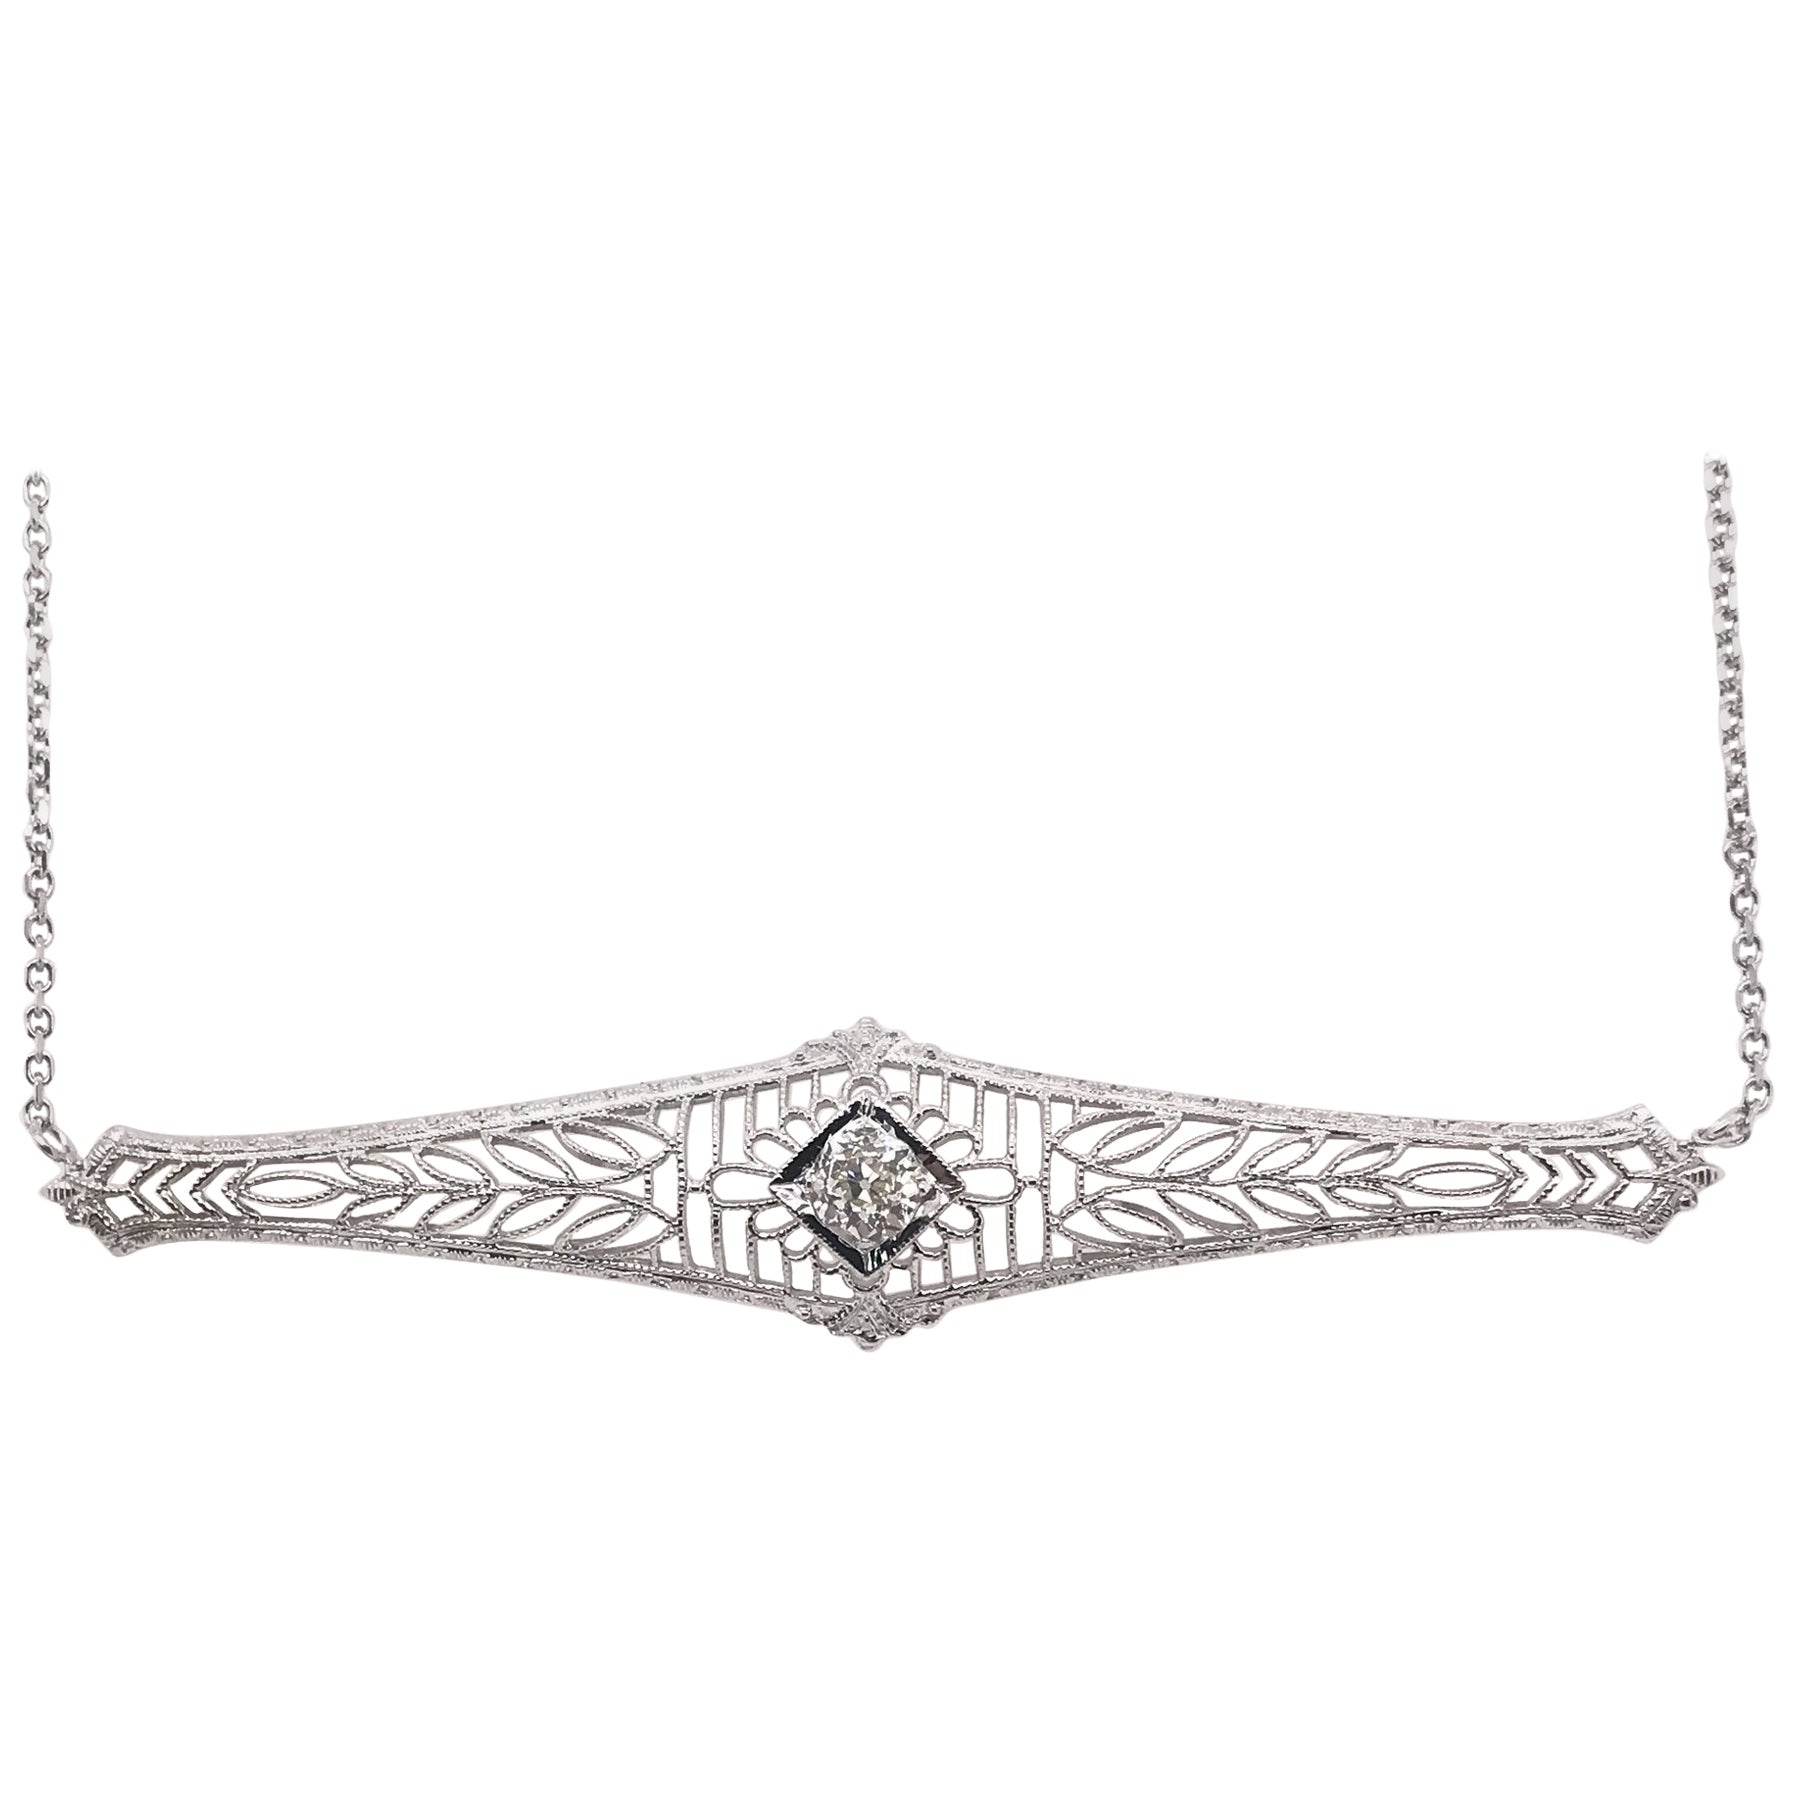 Antique 0.25 Carat Old Mine Cut Diamond Necklace